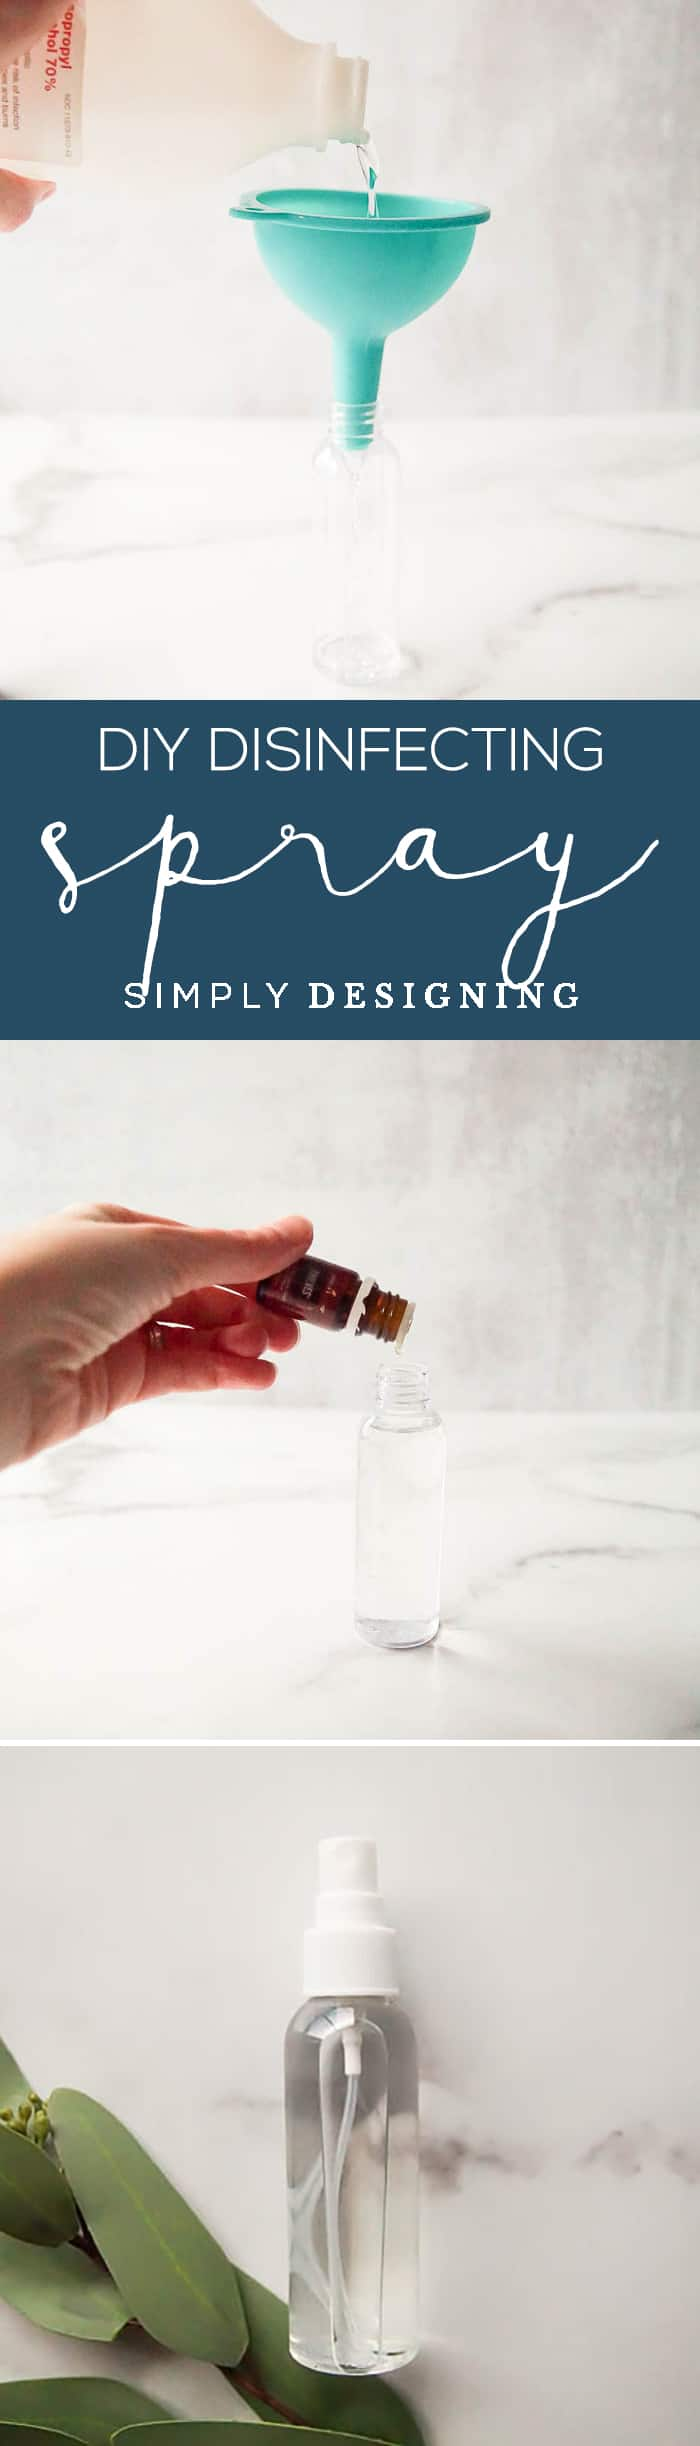 easy and inexpensive homemade sanitizing spray